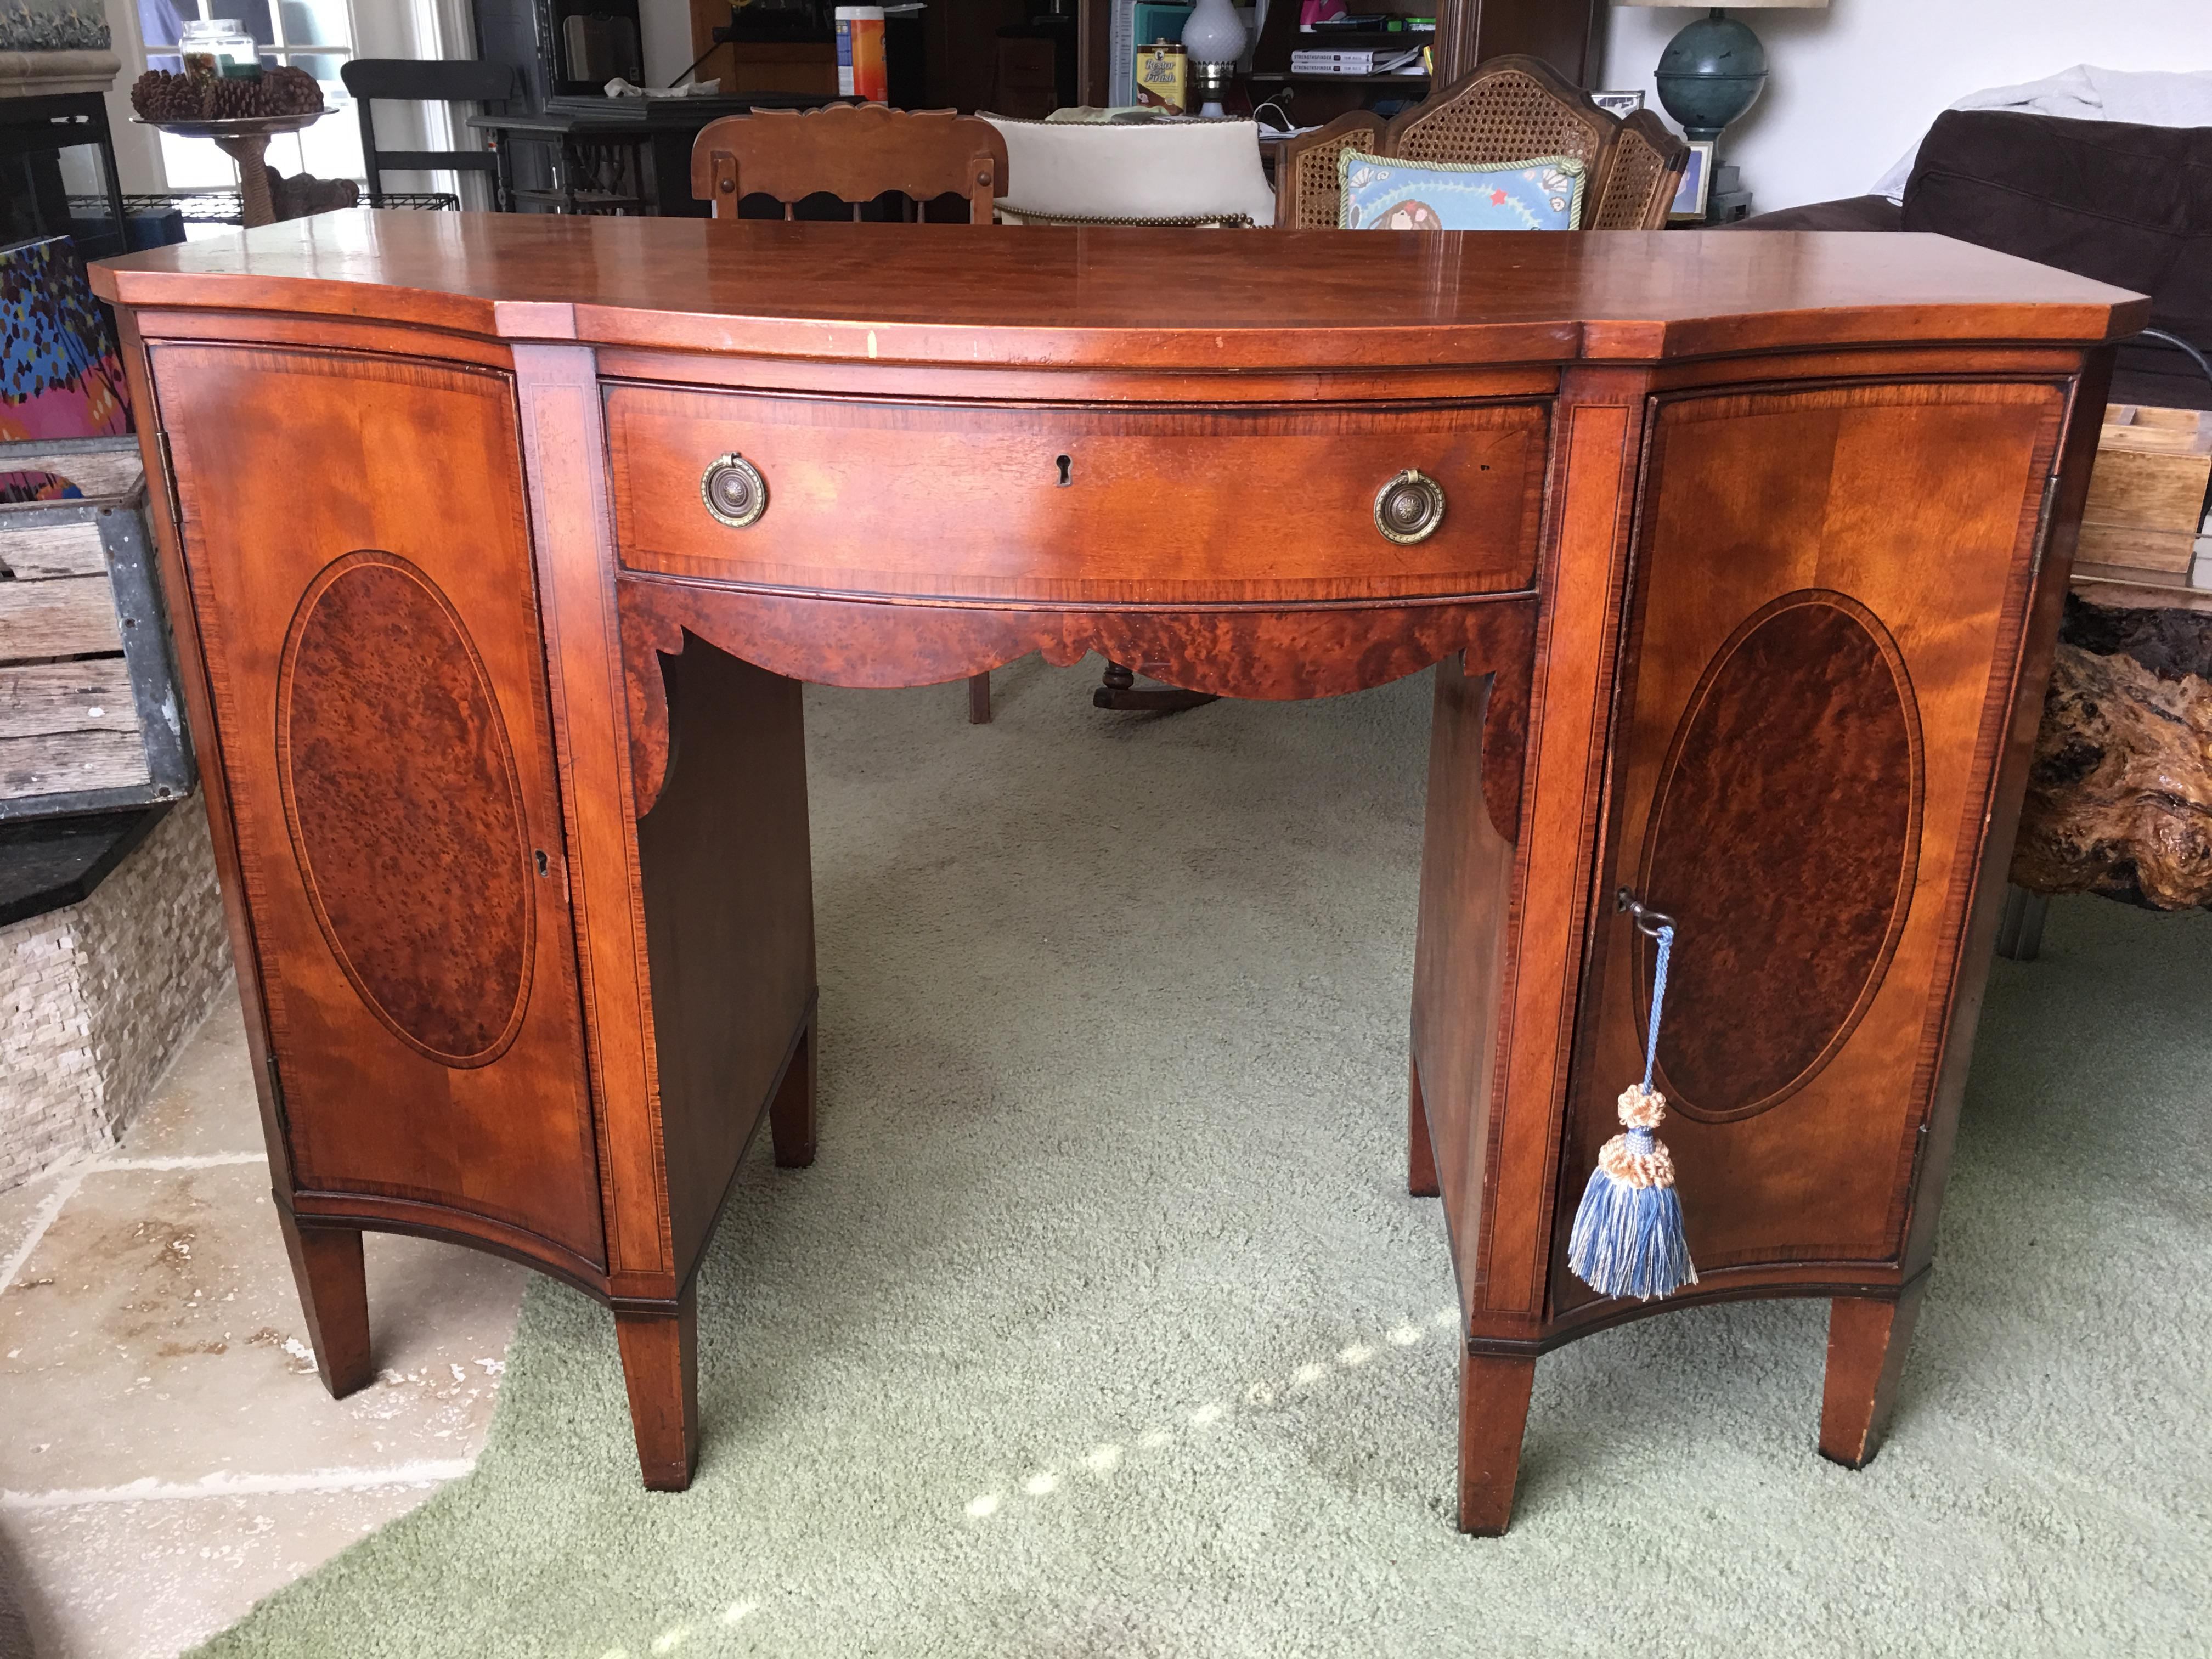 Beautiful Antique Royal Furniture Desk By Robert W. Irwin Co. Desk Has A  Large